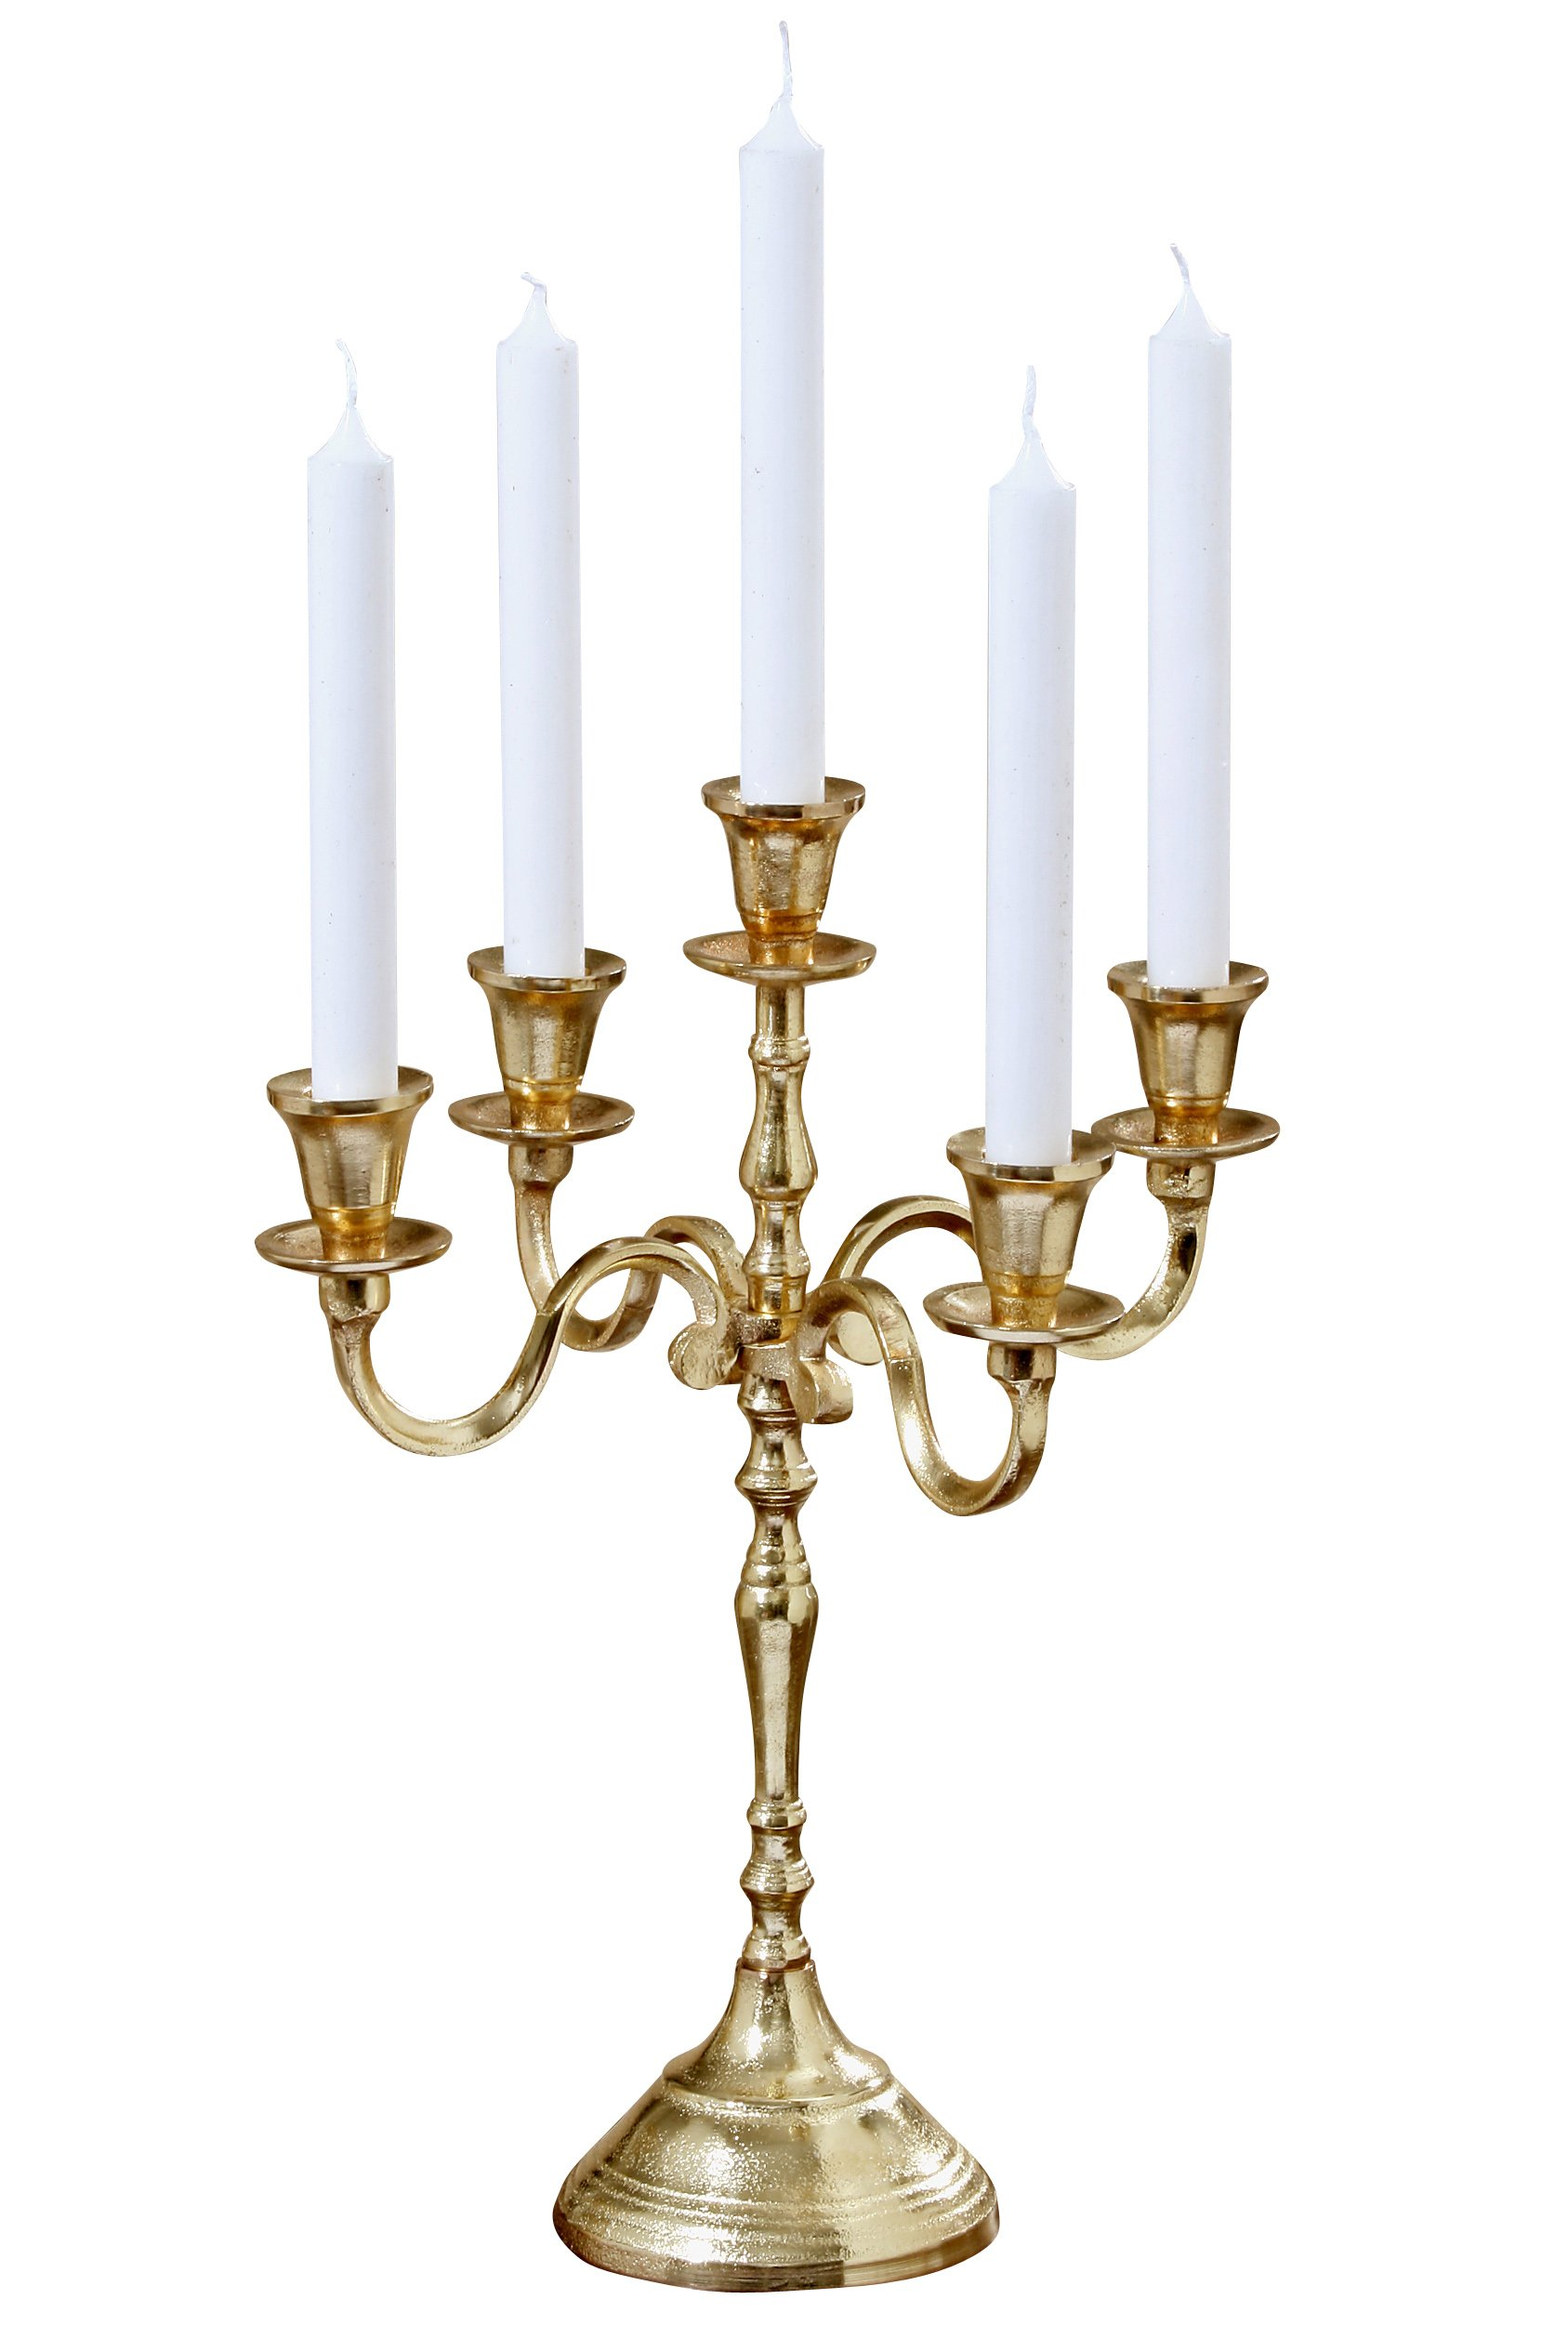 WHW Whole House Worlds Hamptons Five Candle Golden Candelabra, Hand Crafted of Cast Aluminum Nickel, Over 1 FT (15 ¾ Inches)